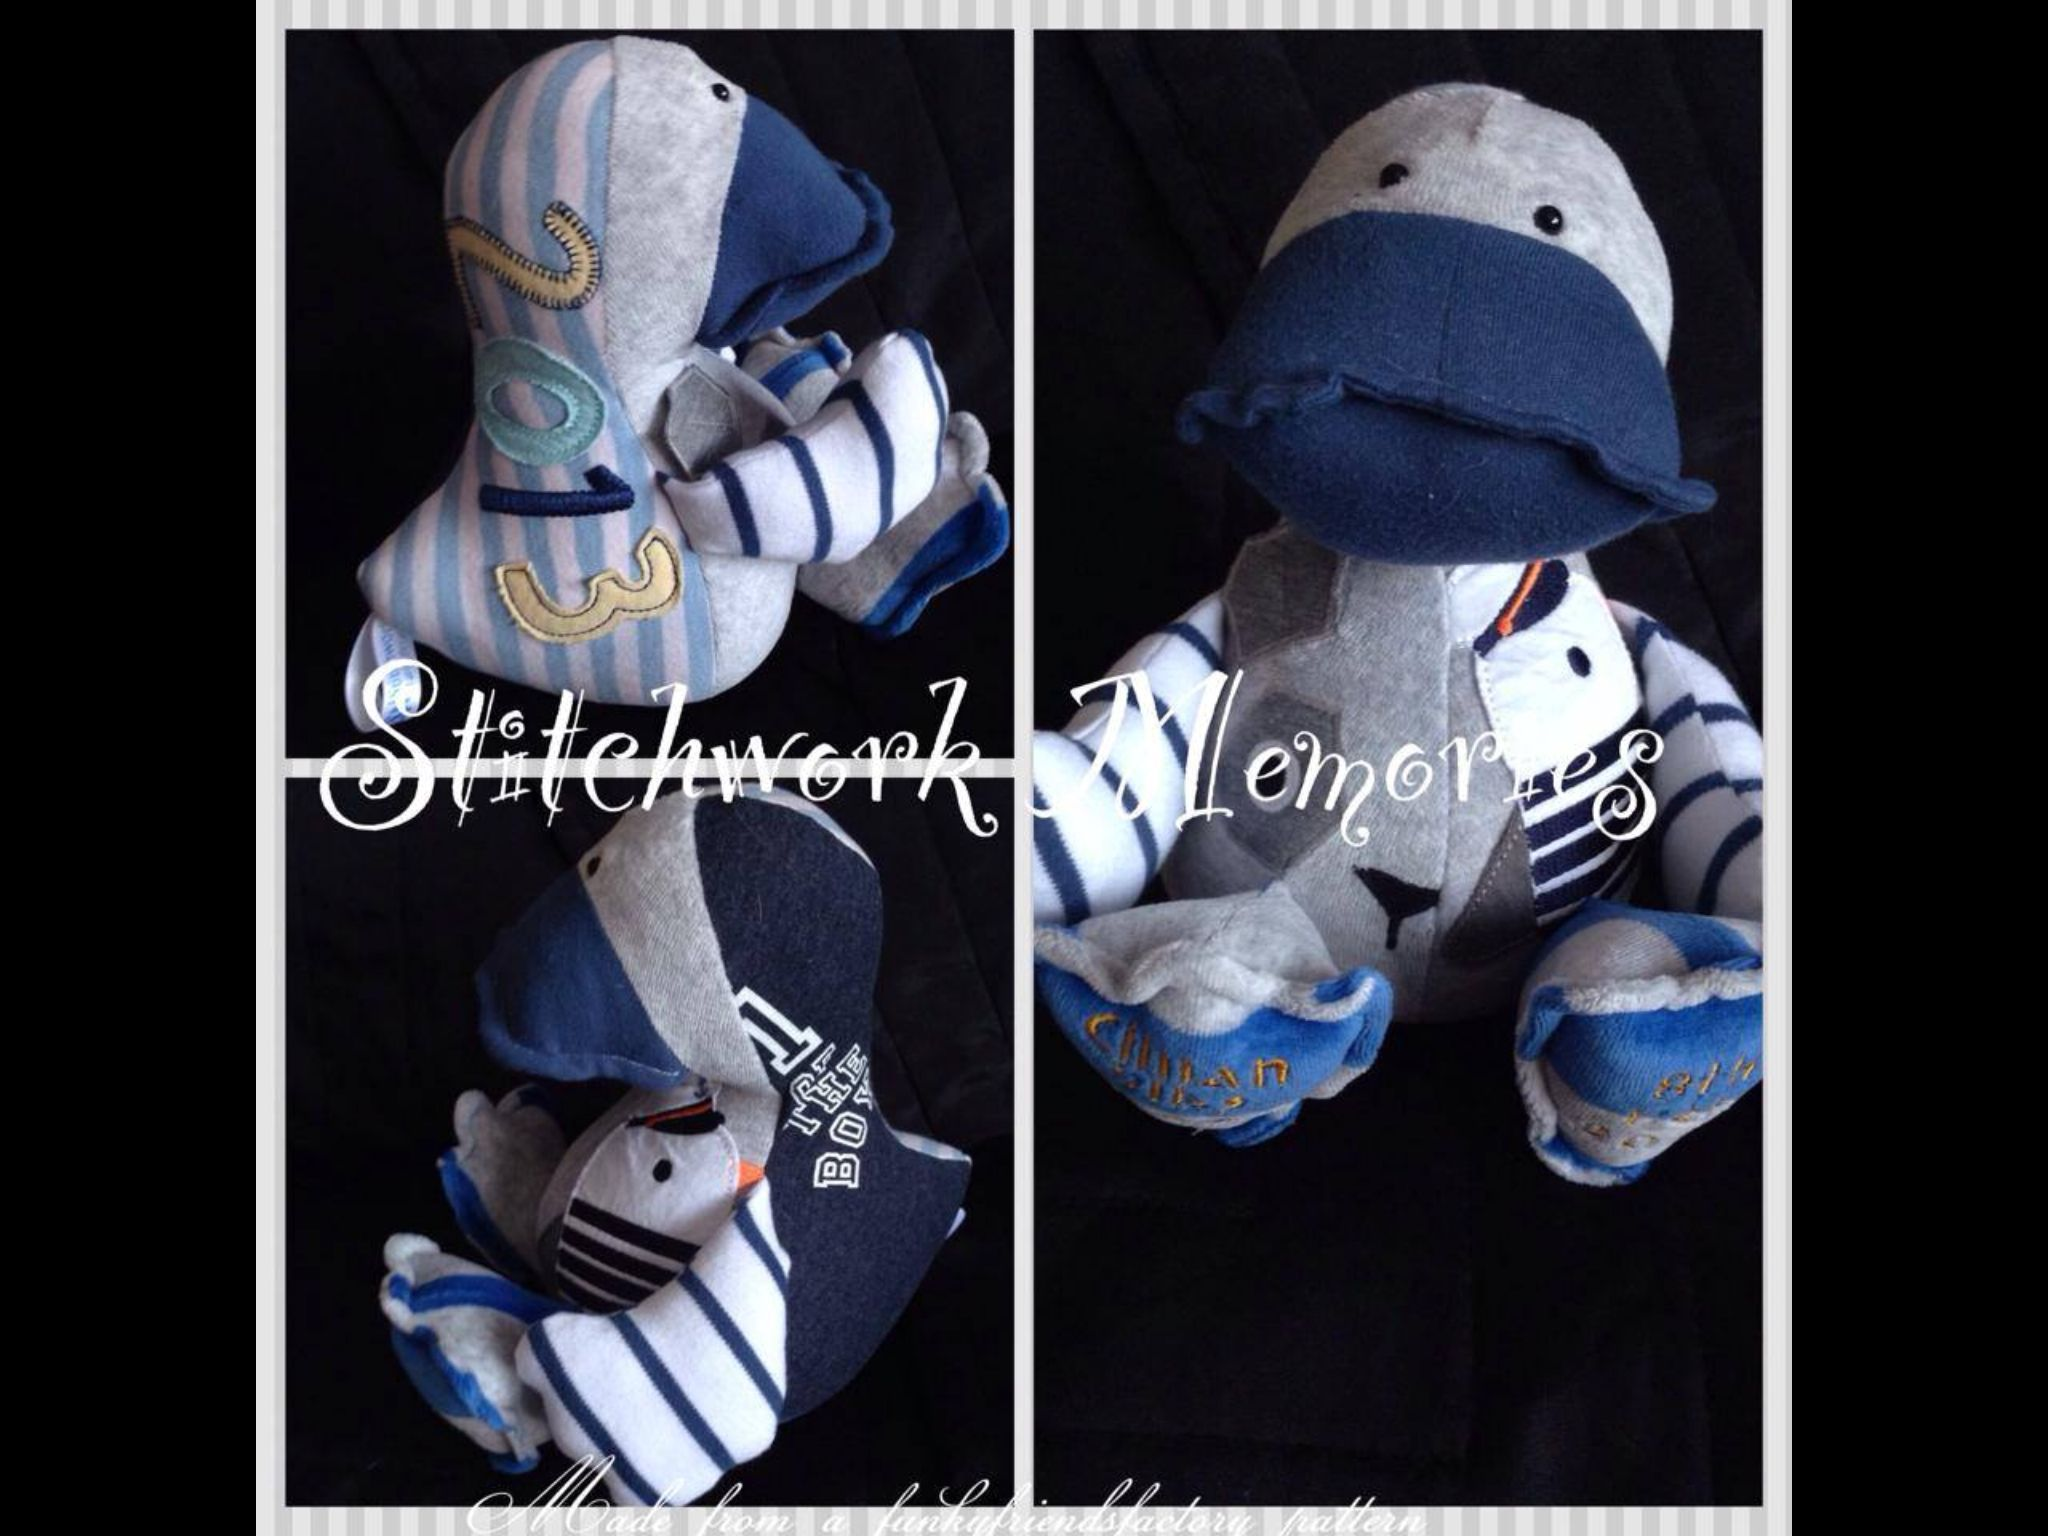 Cute #duck #keepsake made from #baby #clothes. Ducks cost £20 xx #handmade #boys #gifts #parents #stitchwork #memories